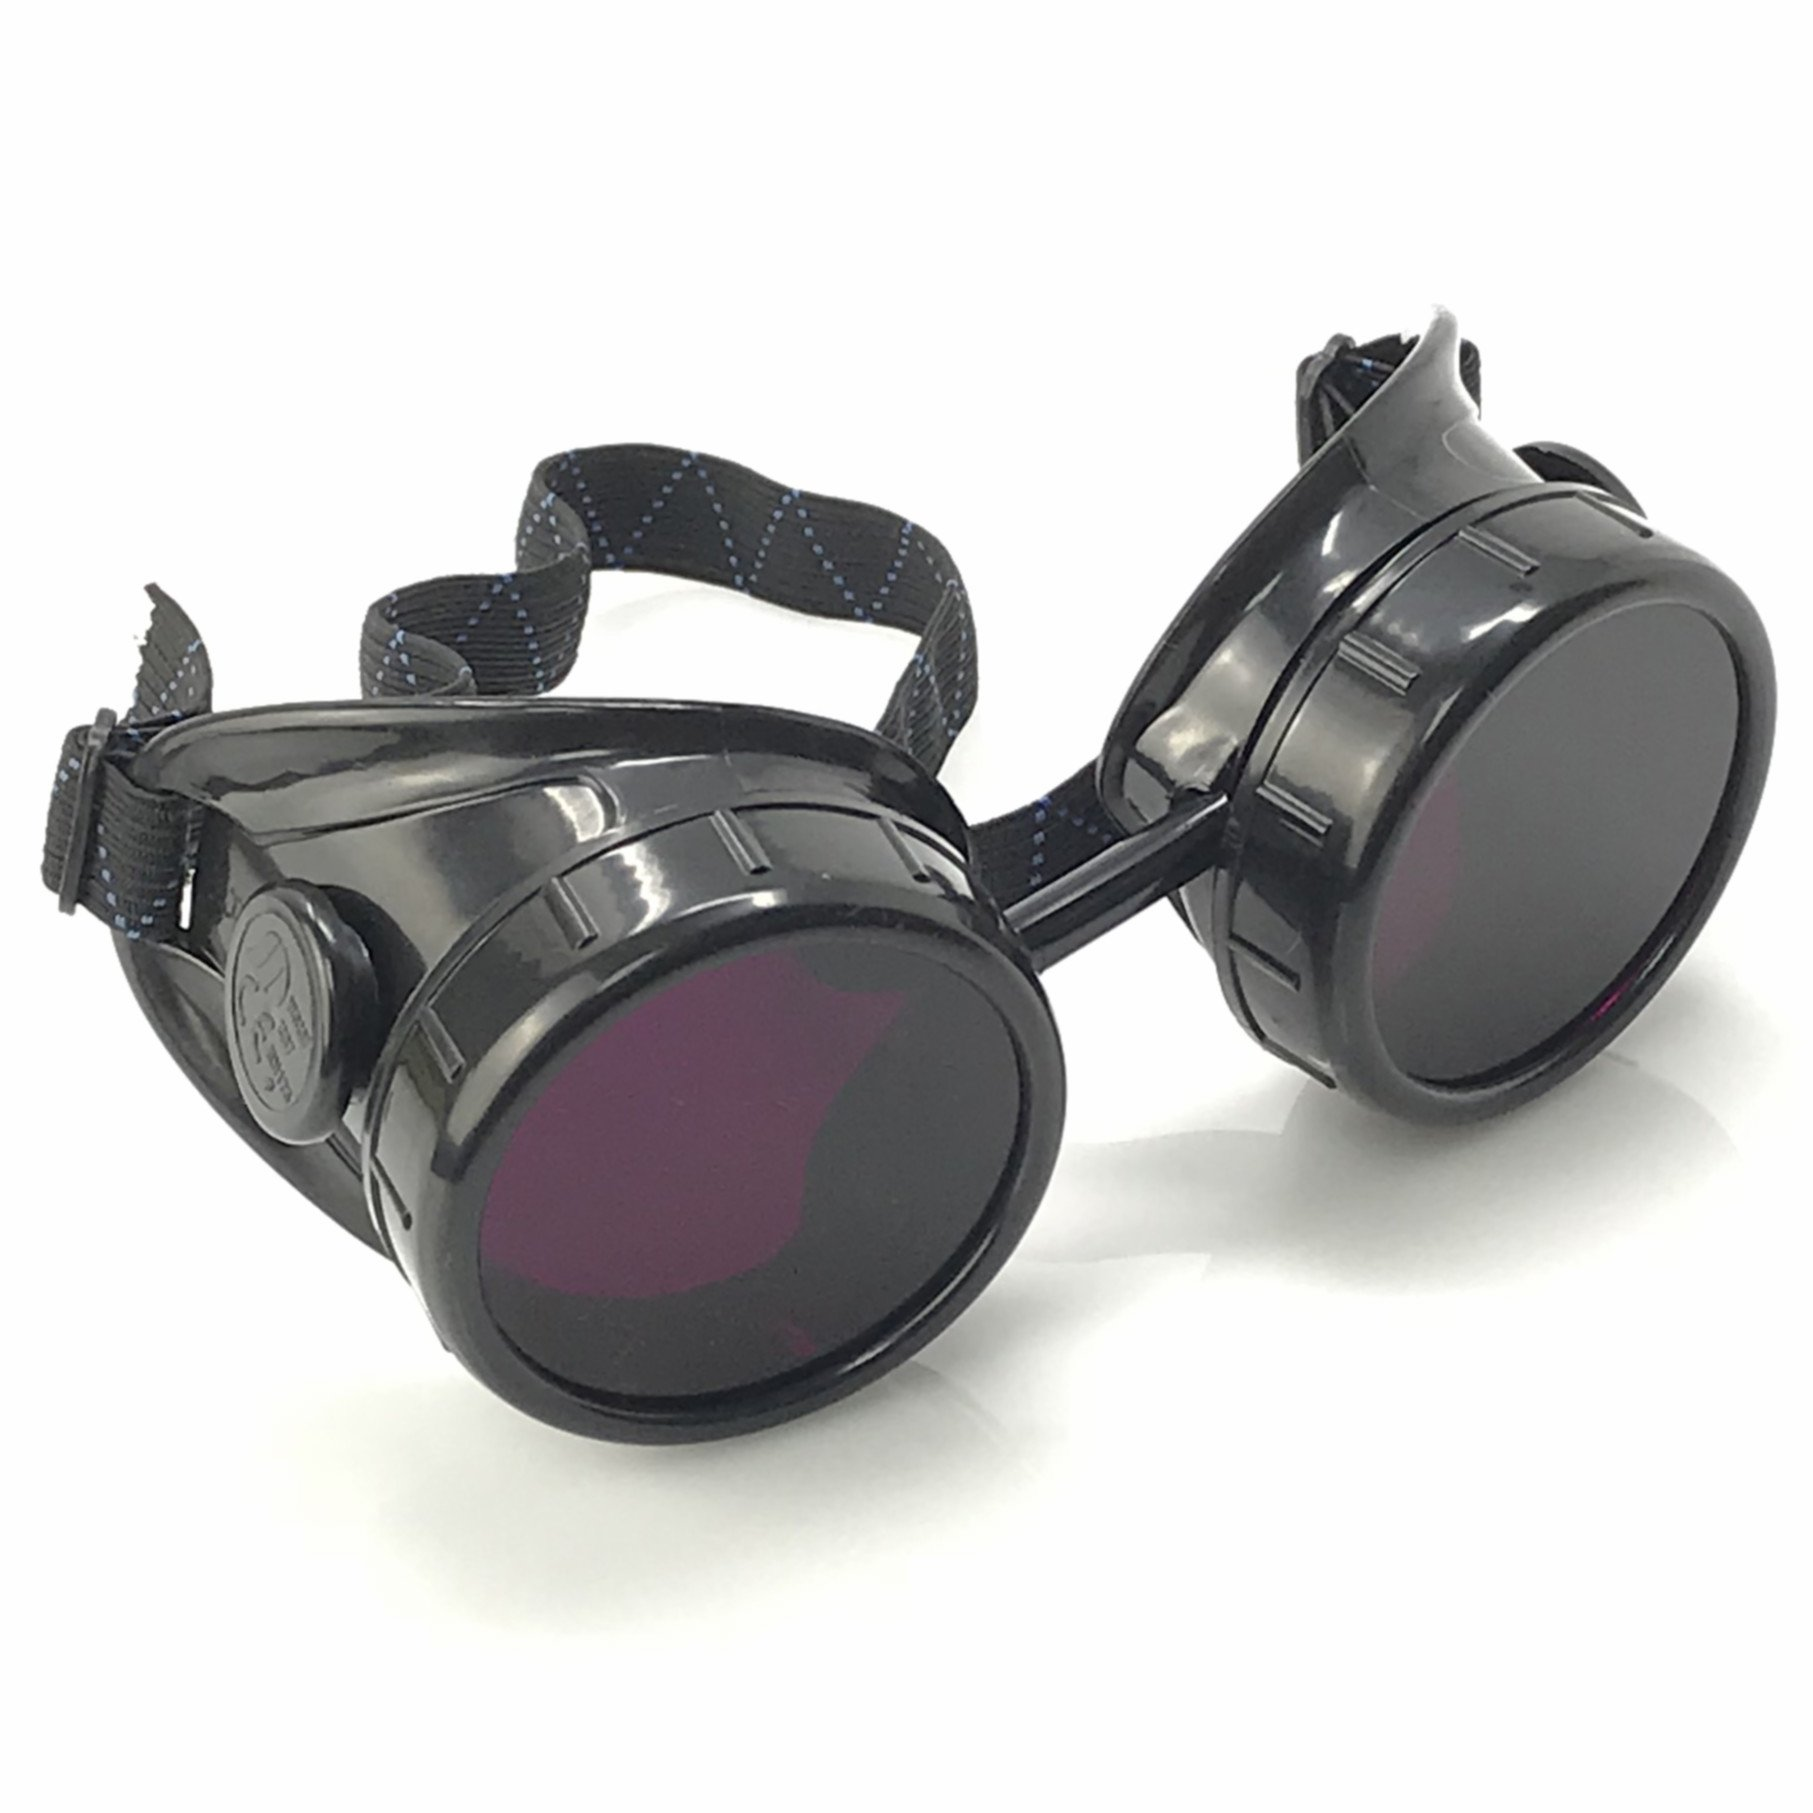 umbrellalaboratory Steampunk Victorian Goggles Welding Glasses Industrial Look Sleek and Stylish